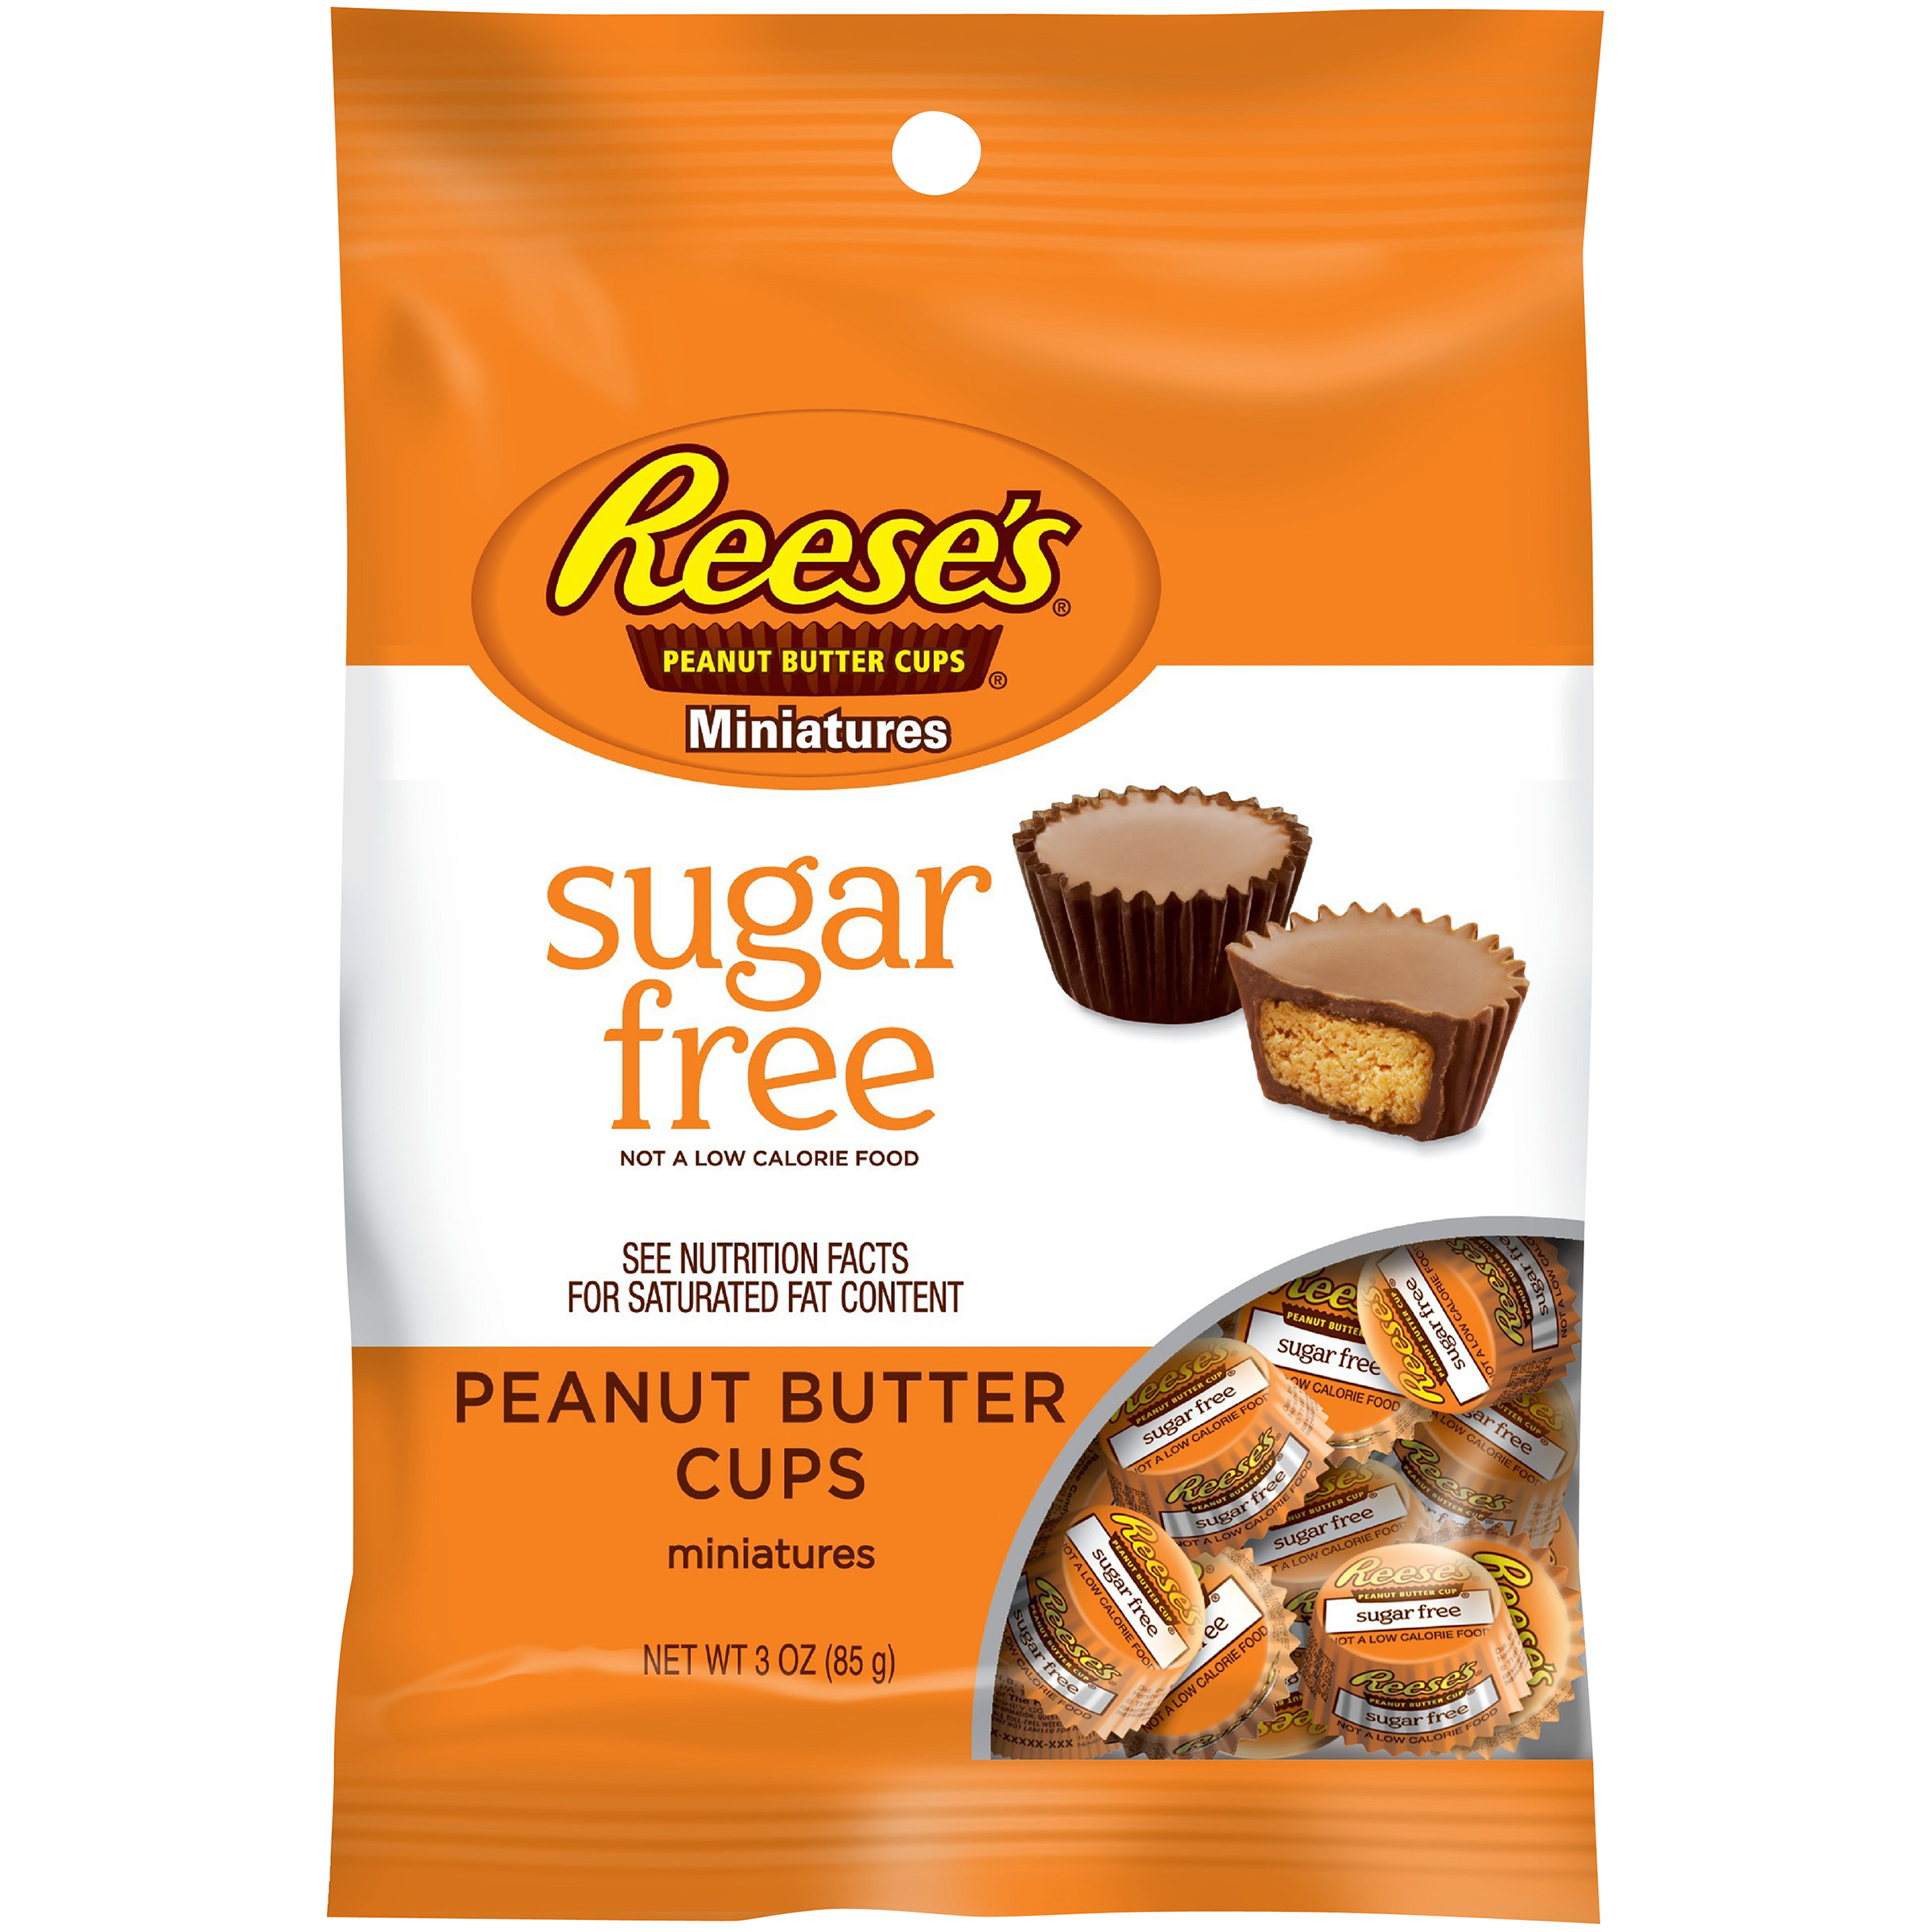 REESE'S SUGAR FREE Peanut Butter Cups Miniatures, 3 oz